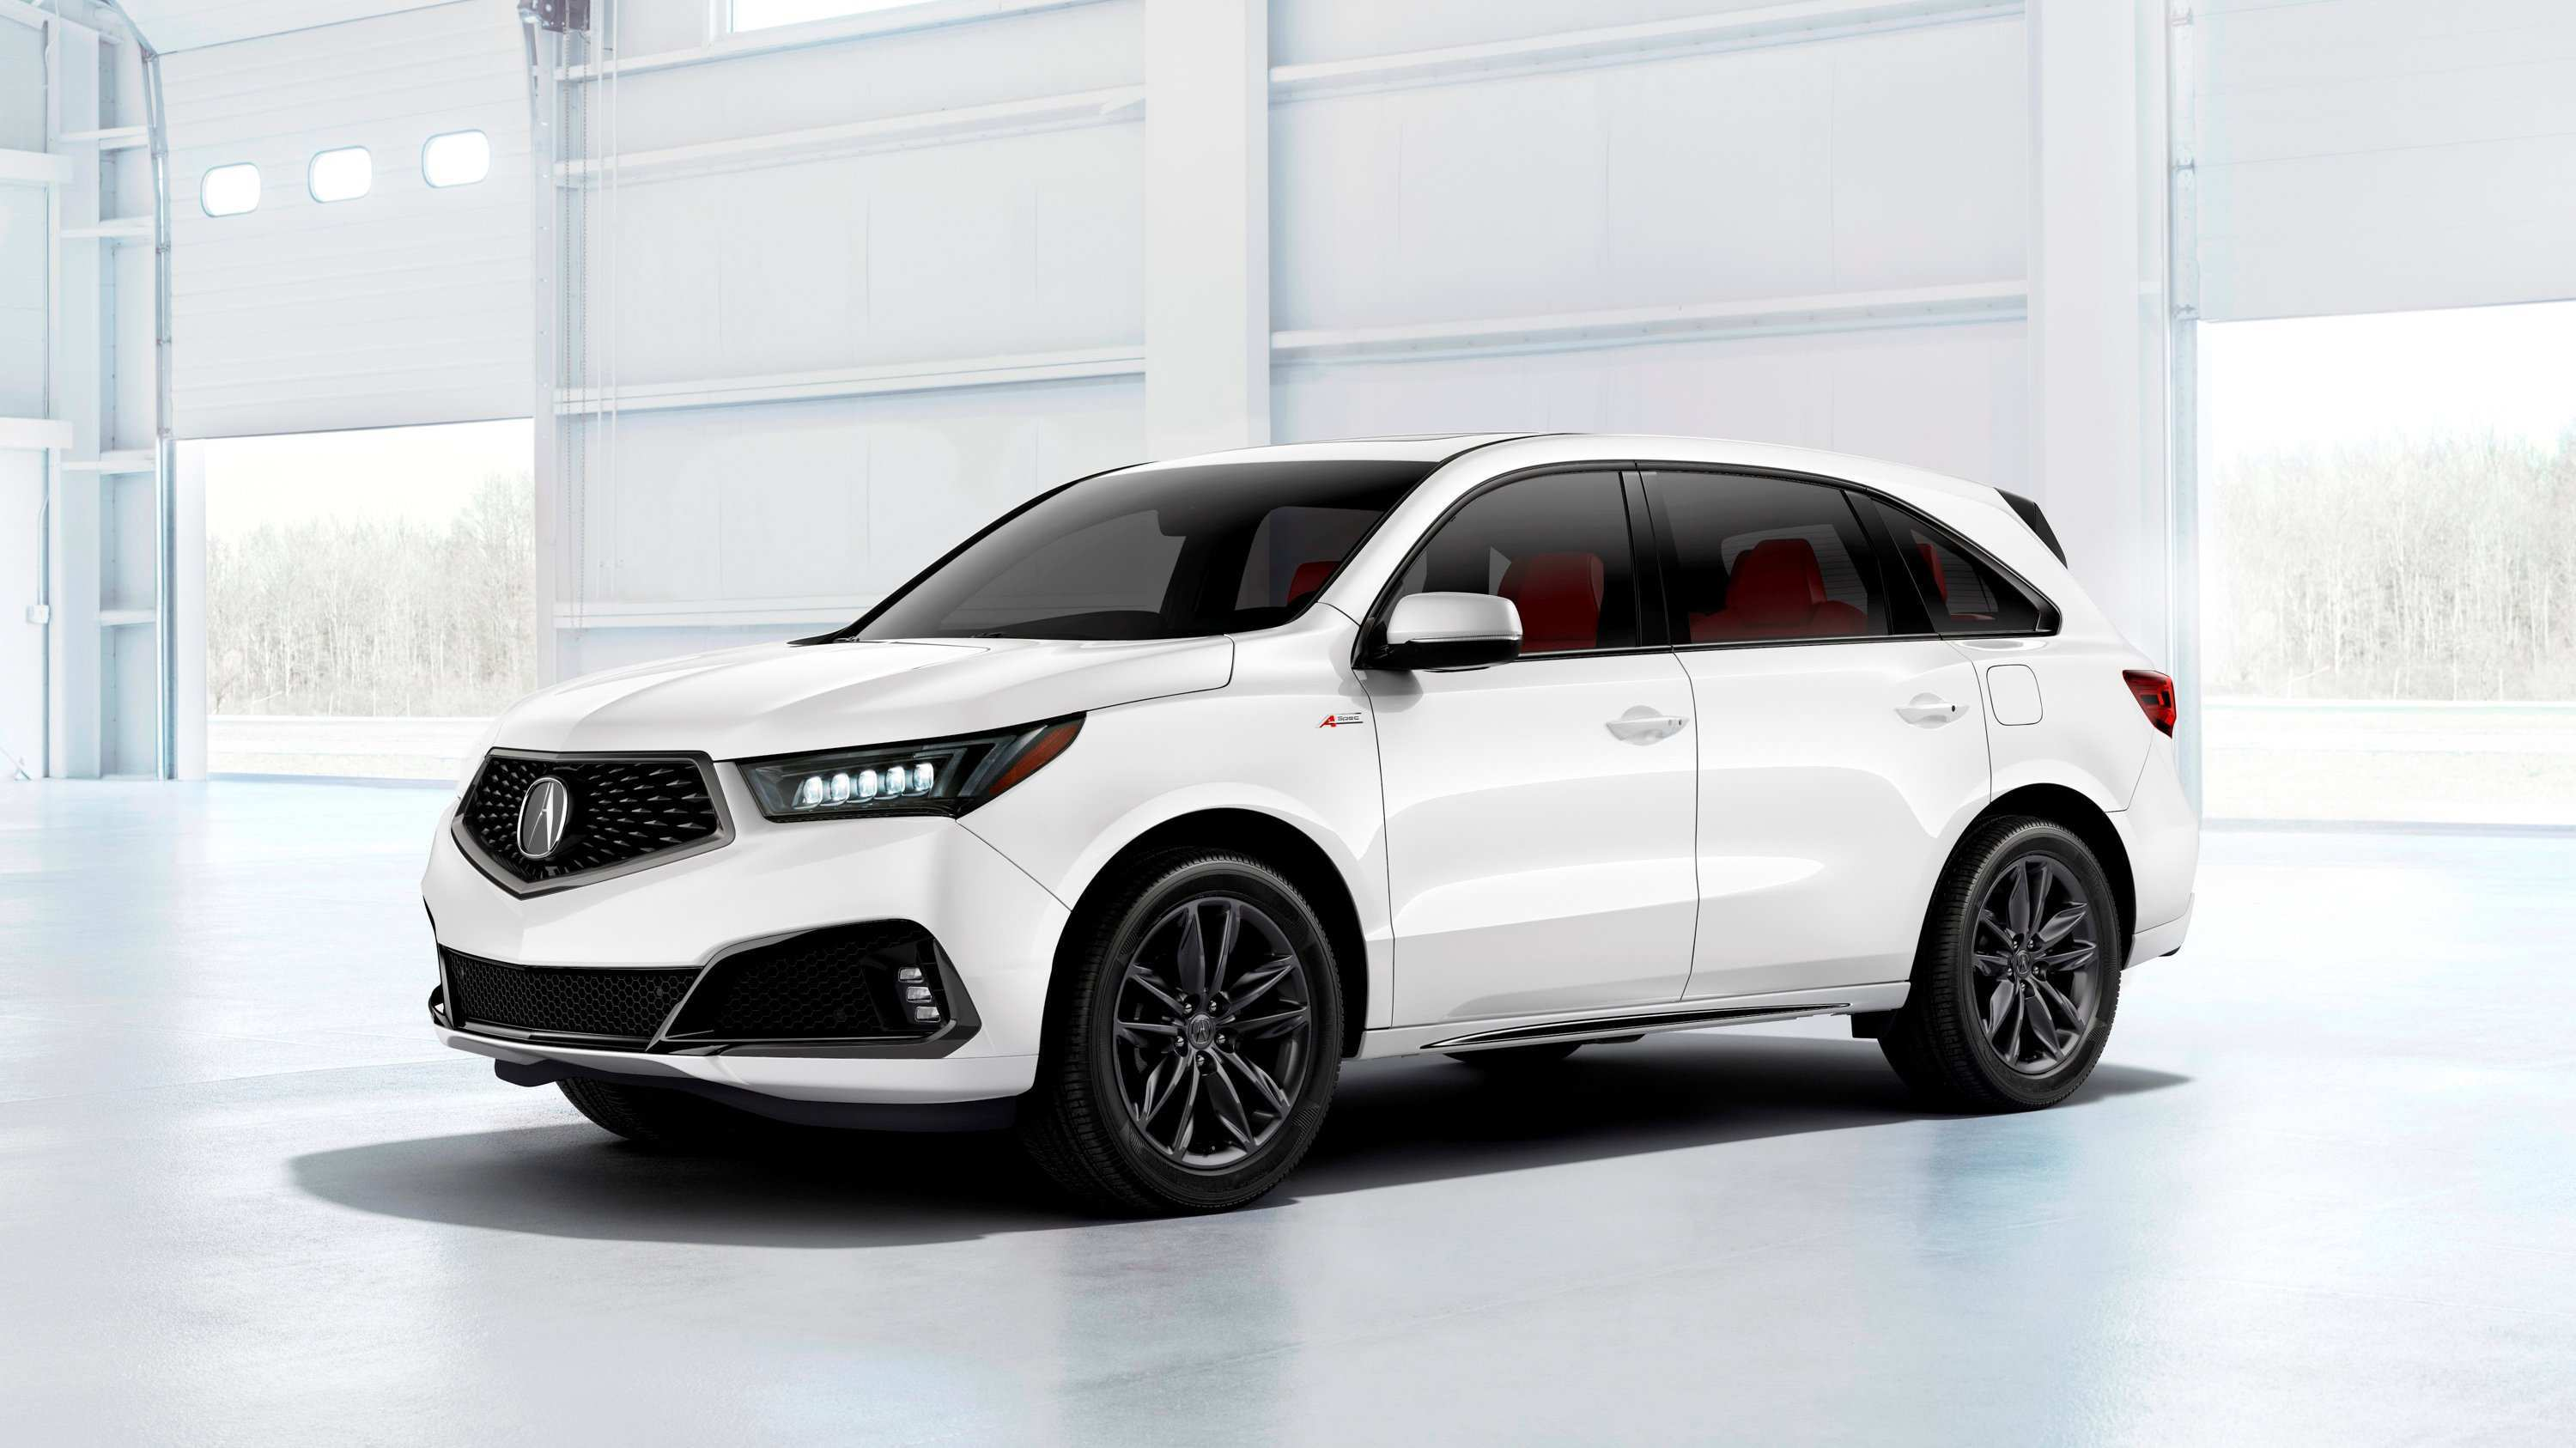 30 Great 2020 Acura Cars Release by 2020 Acura Cars